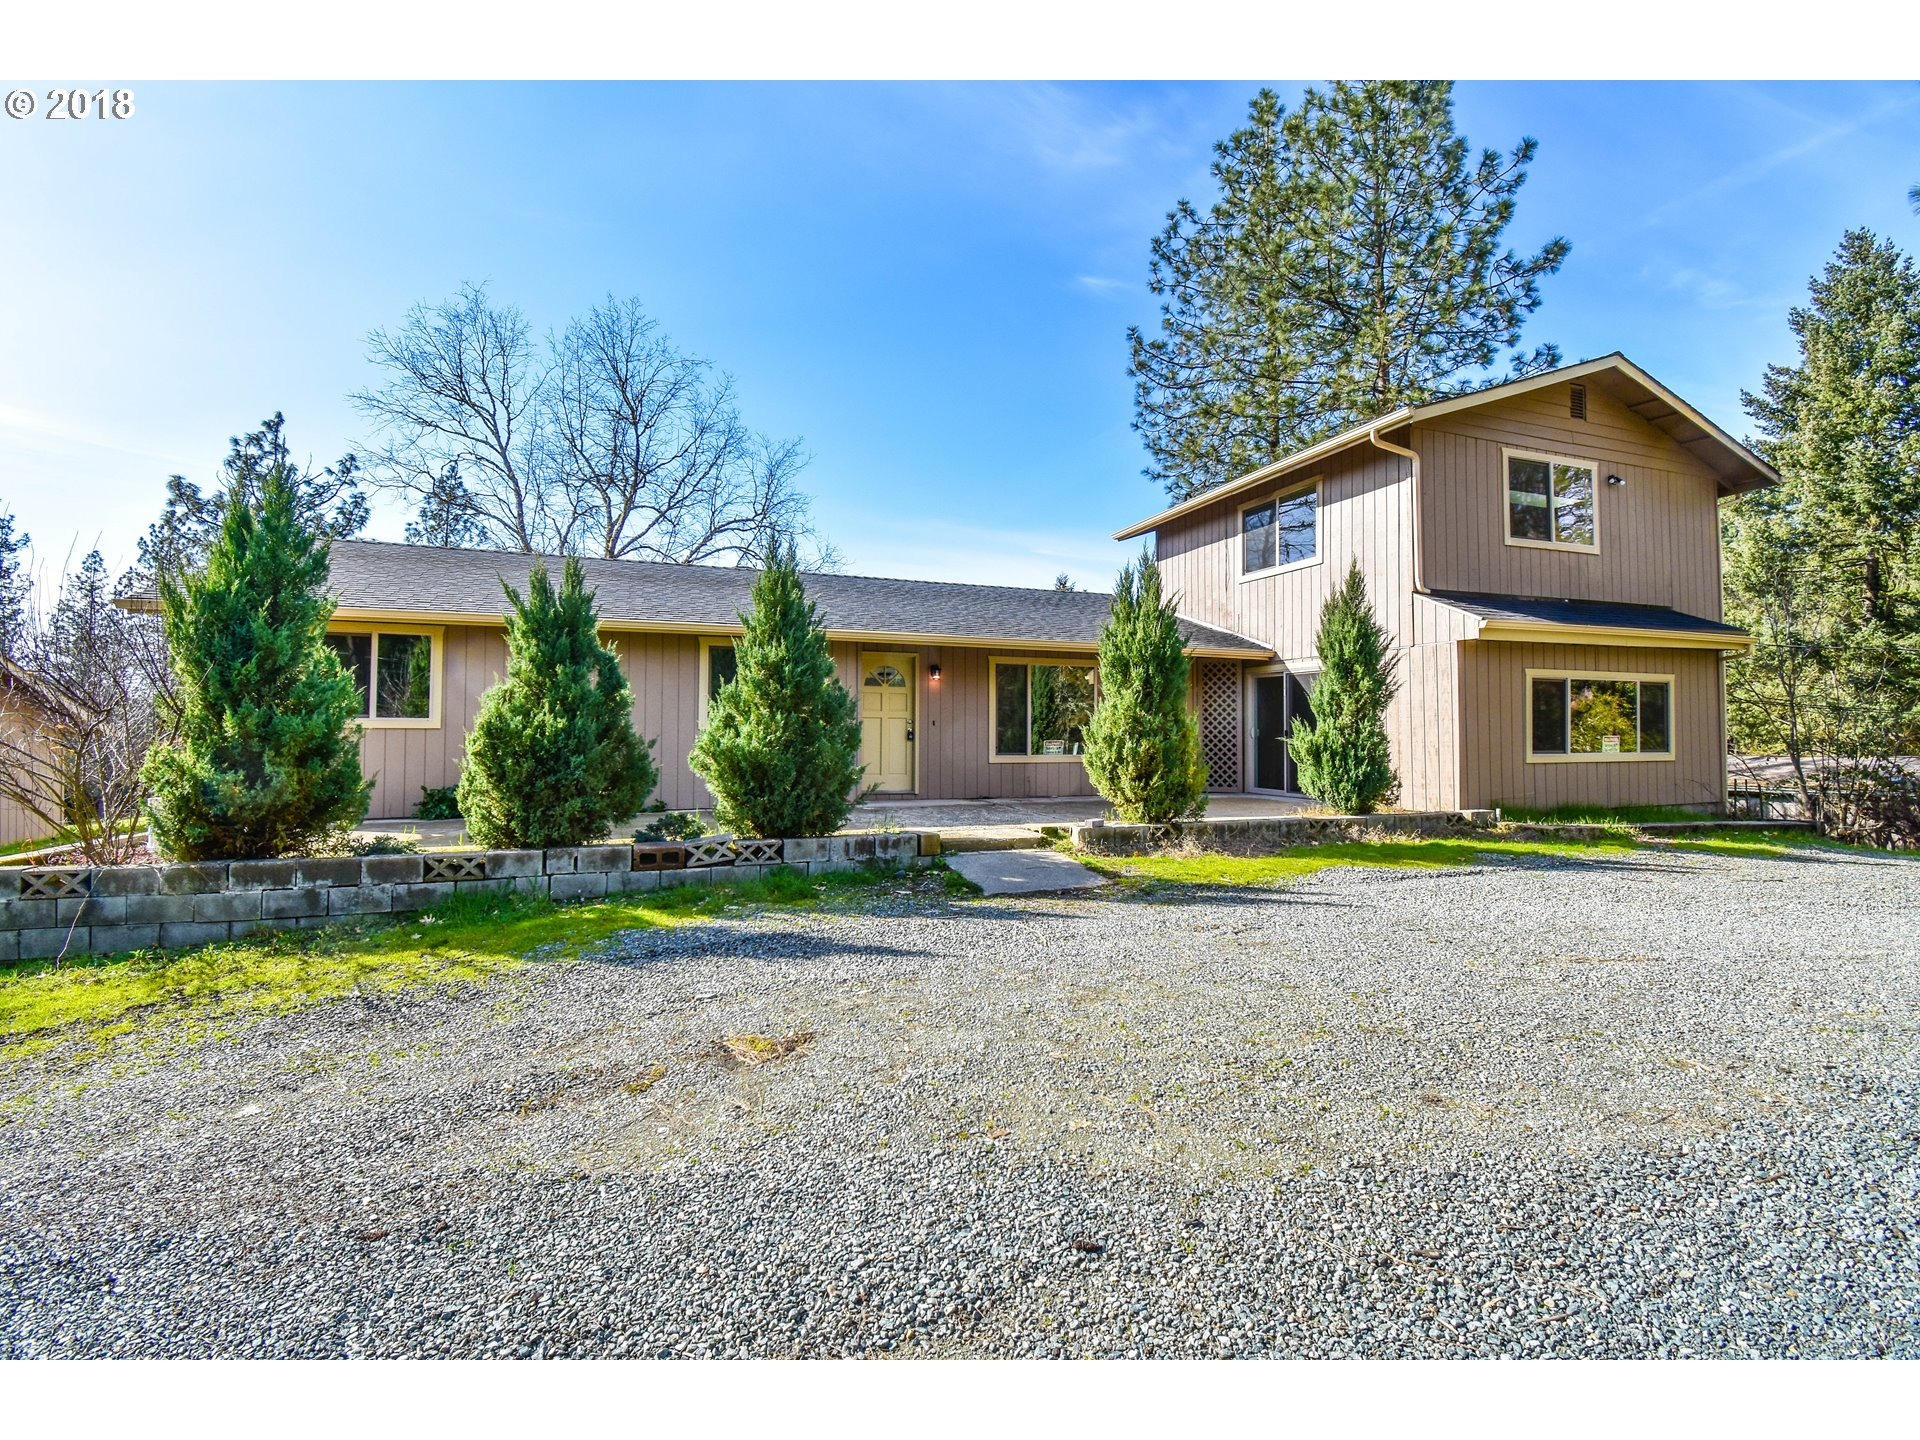 Rogue River, OR 4 Bedroom Home For Sale